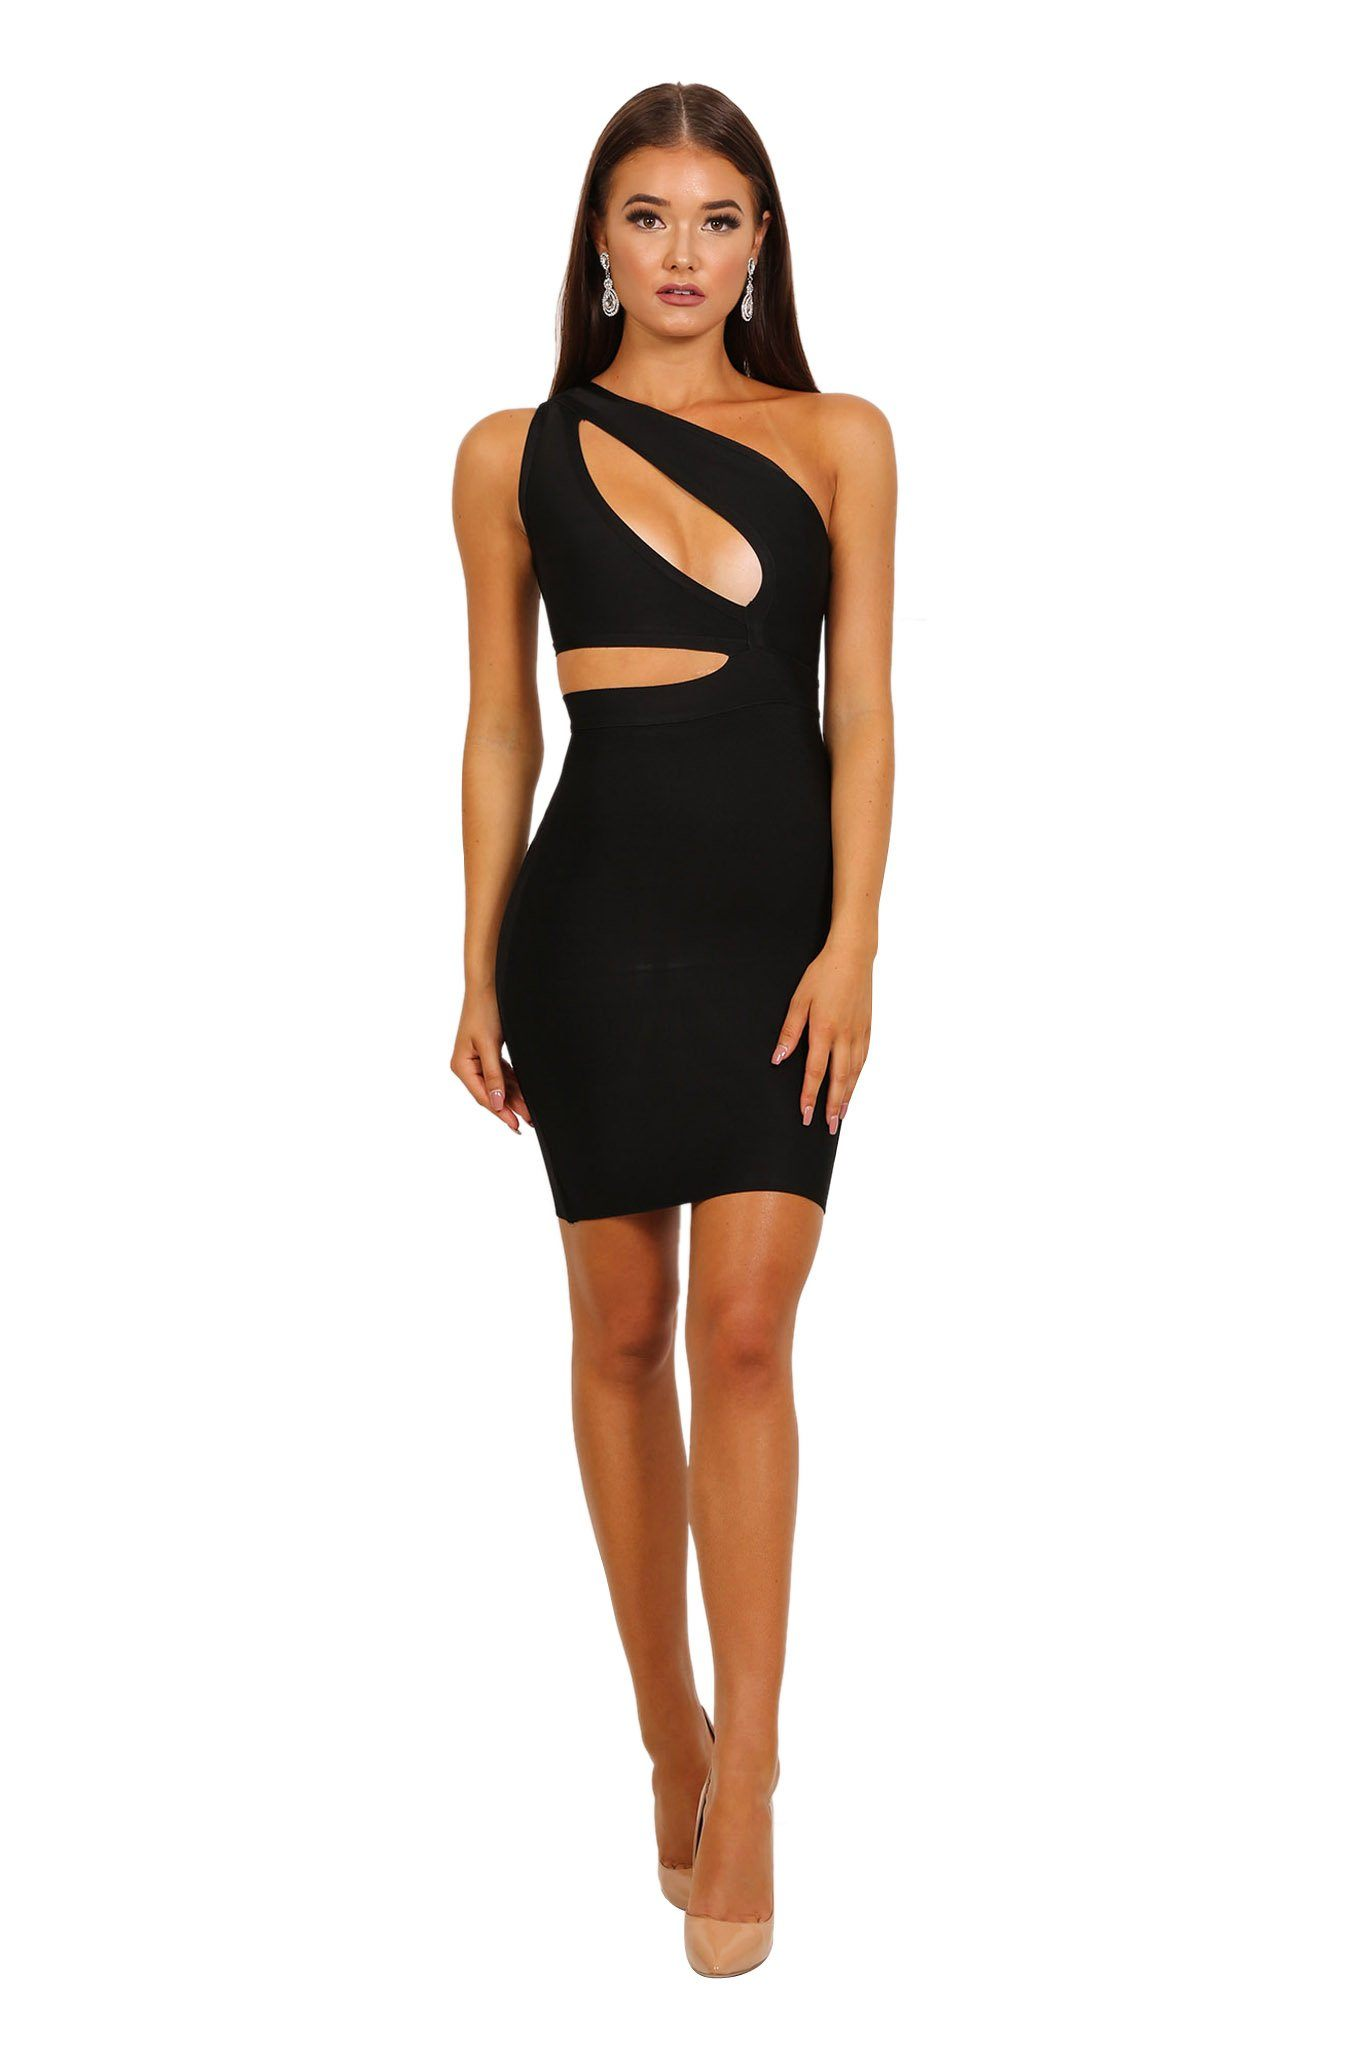 One shoulder style mini bandage dress with stylish cutouts in black color